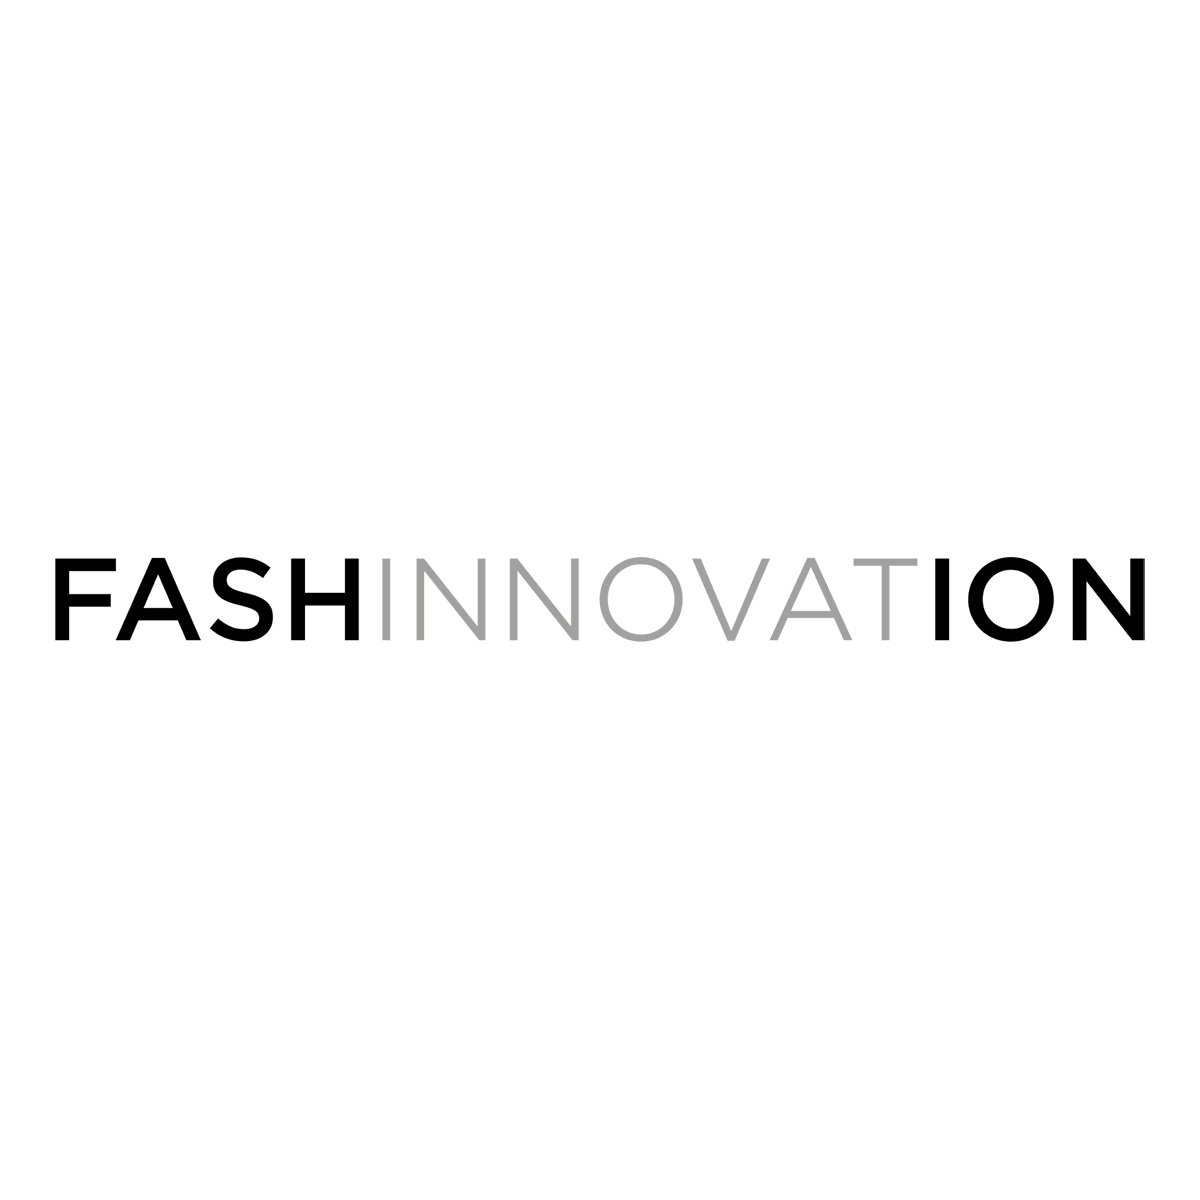 Fashinnovation - Where Fashion and Technology Connect